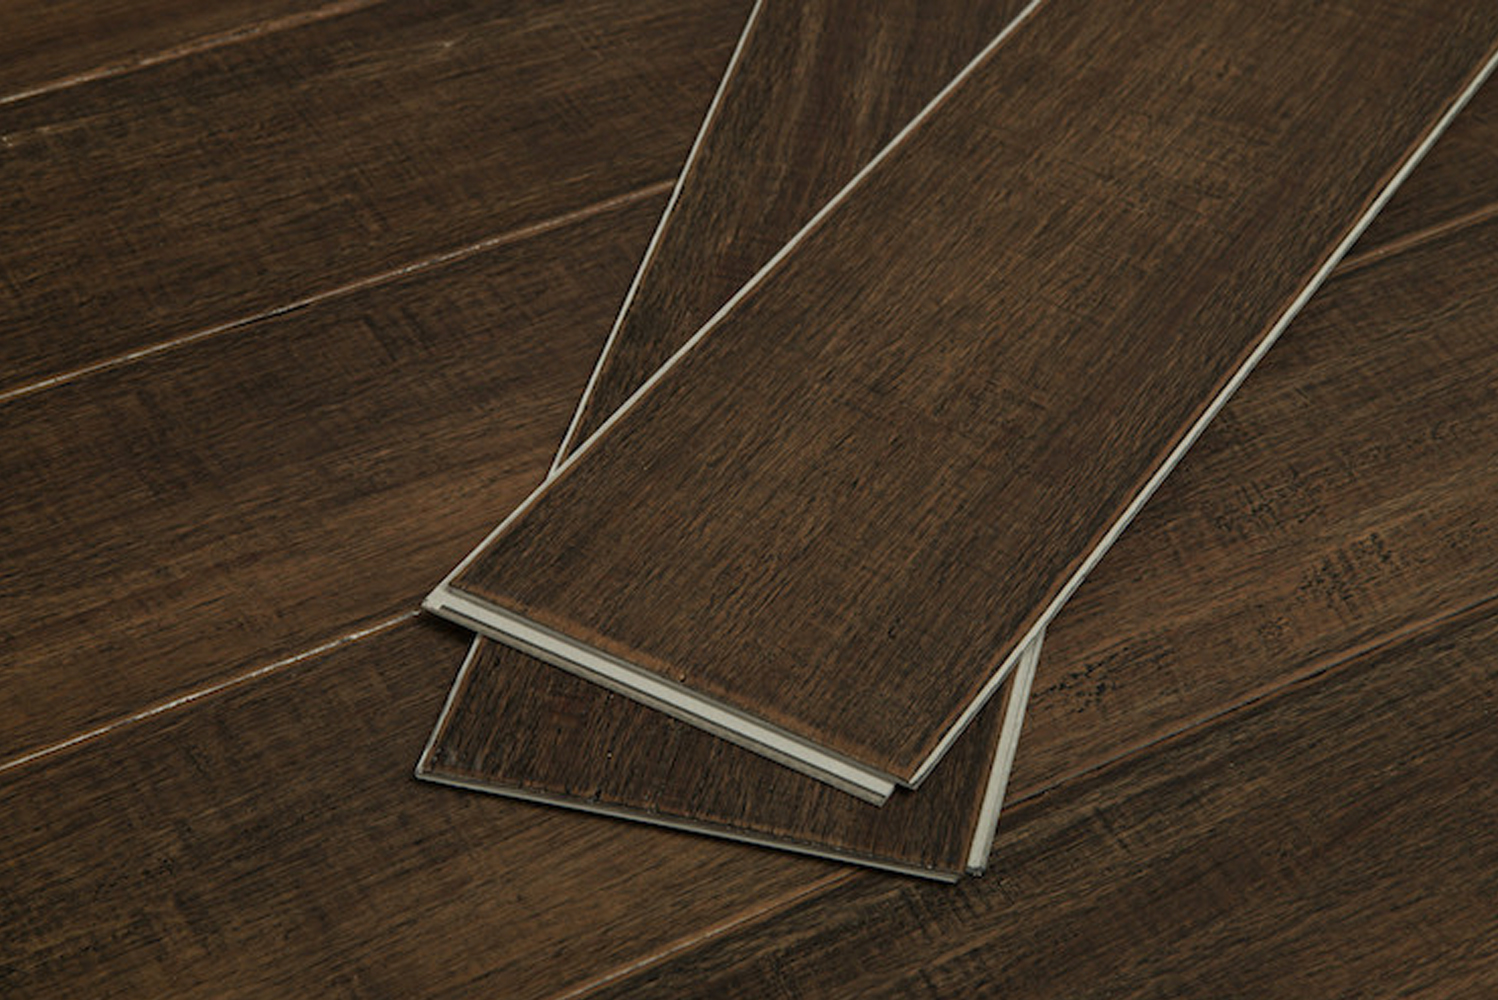 Cali Bamboo launched a new hardwood flooring option.